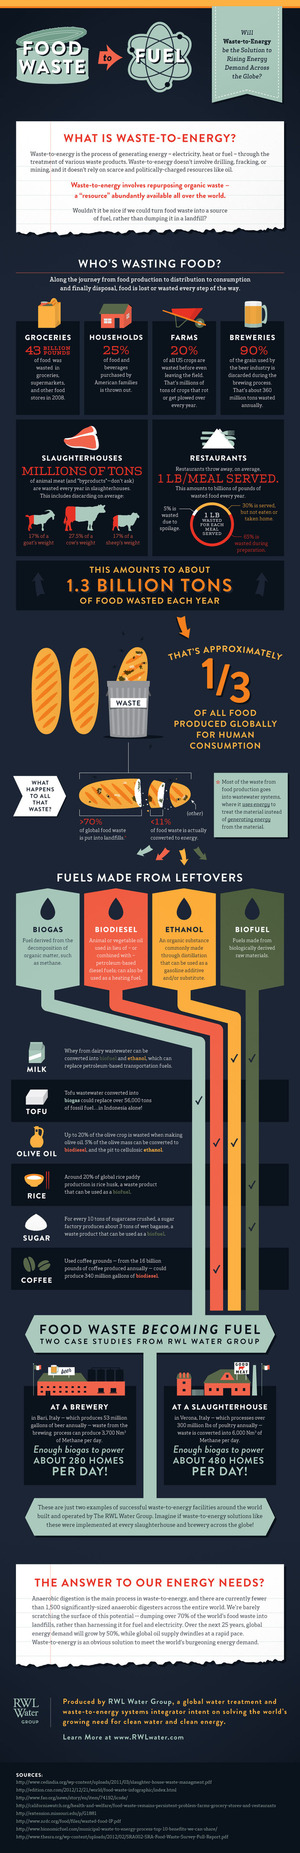 Food Waste to Fuel: An Infographic